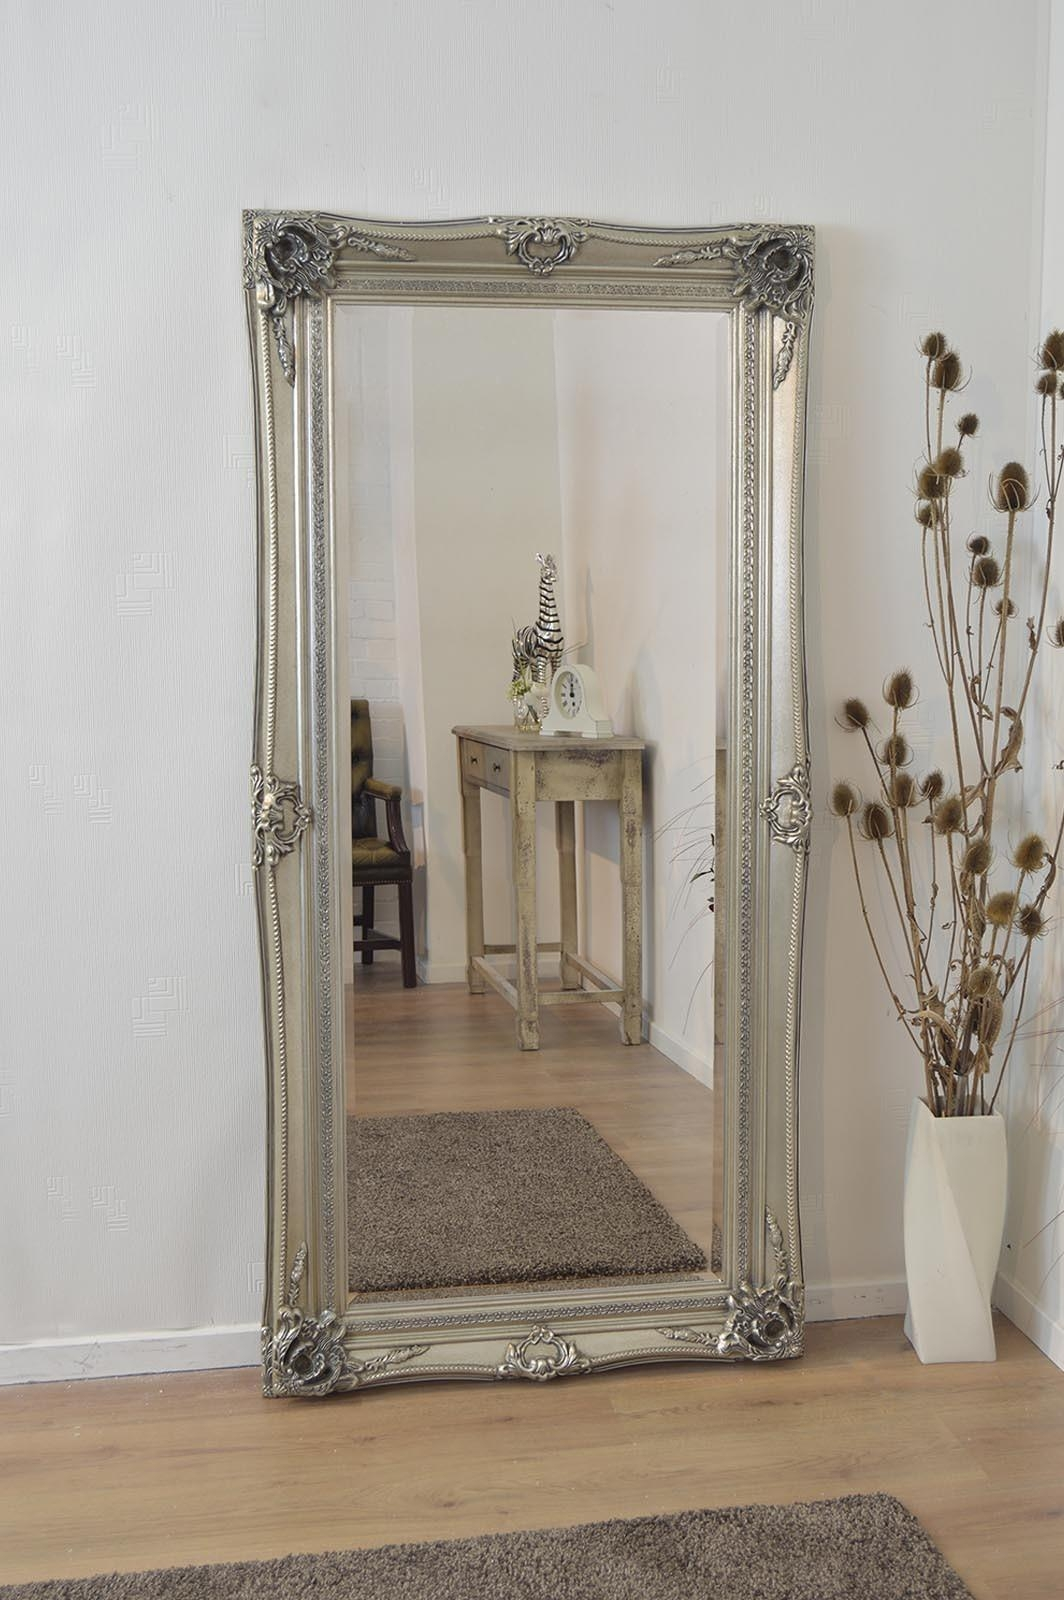 Large Antique Wall Mirror Ornate Frame Antique Ornate Wall Mirrors With Vintage Large Mirrors (Image 11 of 20)